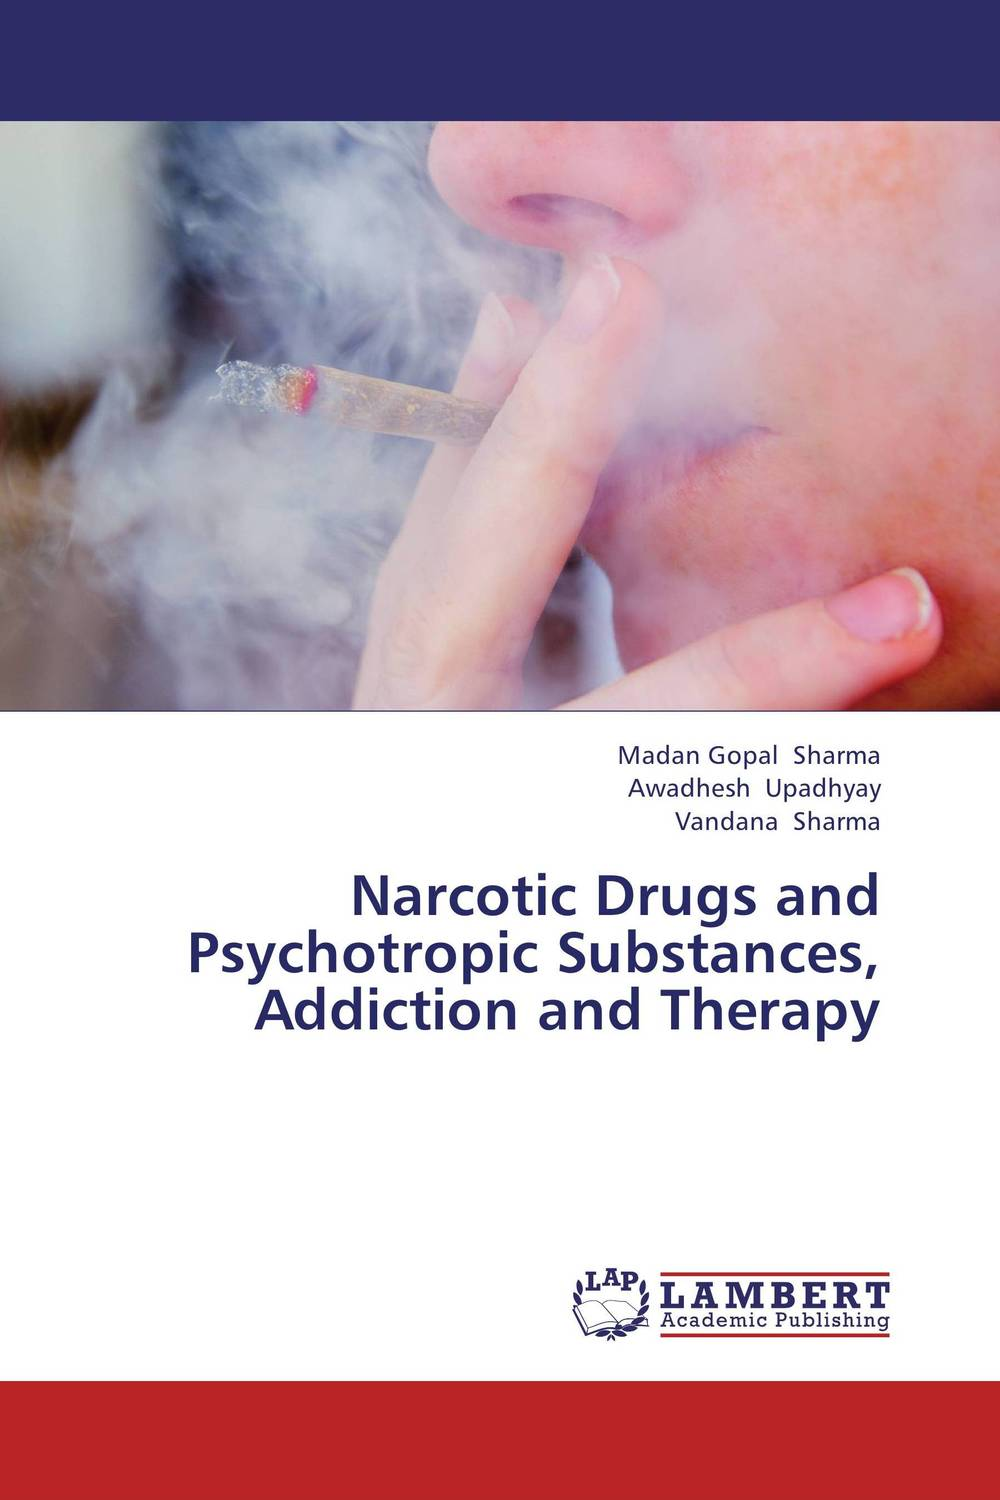 Narcotic Drugs and Psychotropic Substances, Addiction and Therapy